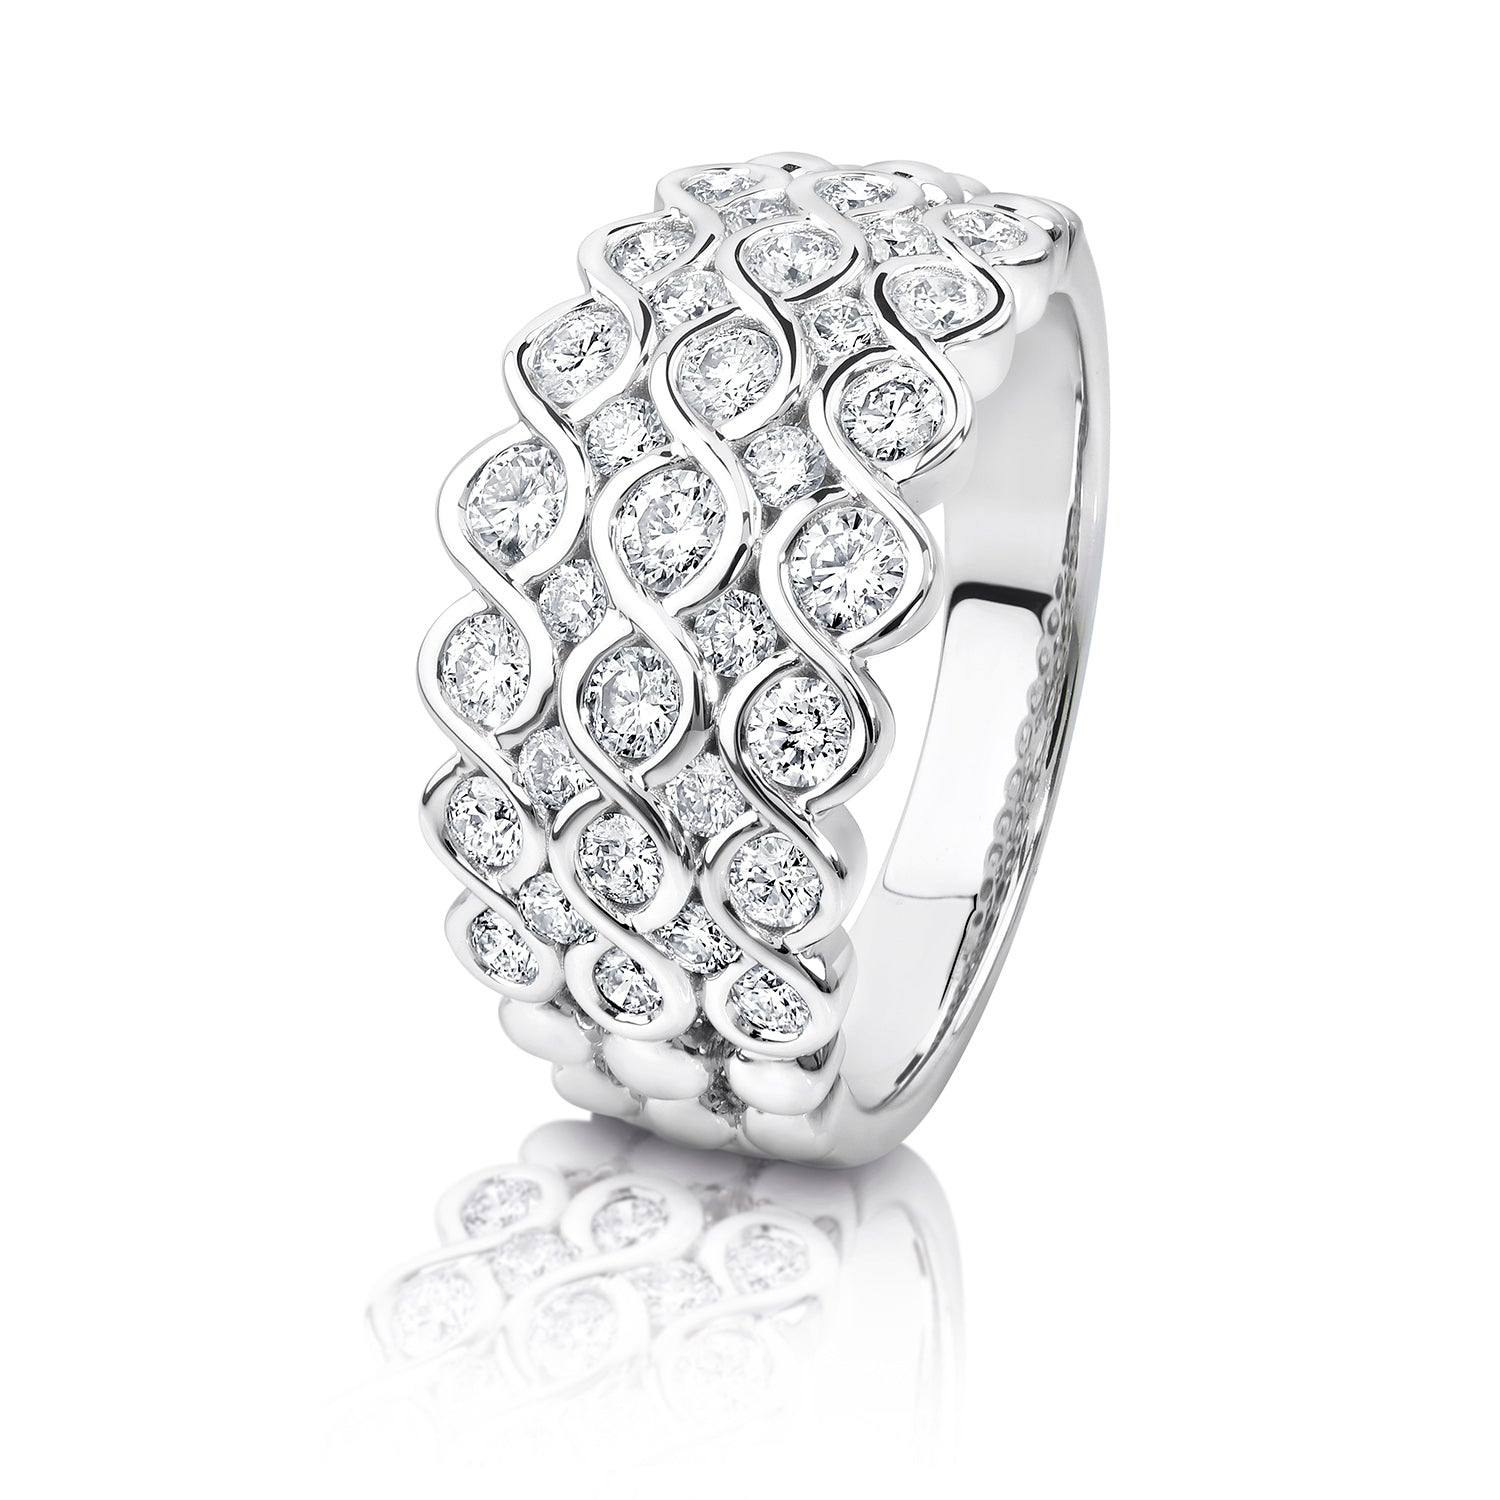 Multi row diamond dress ring set in white gold